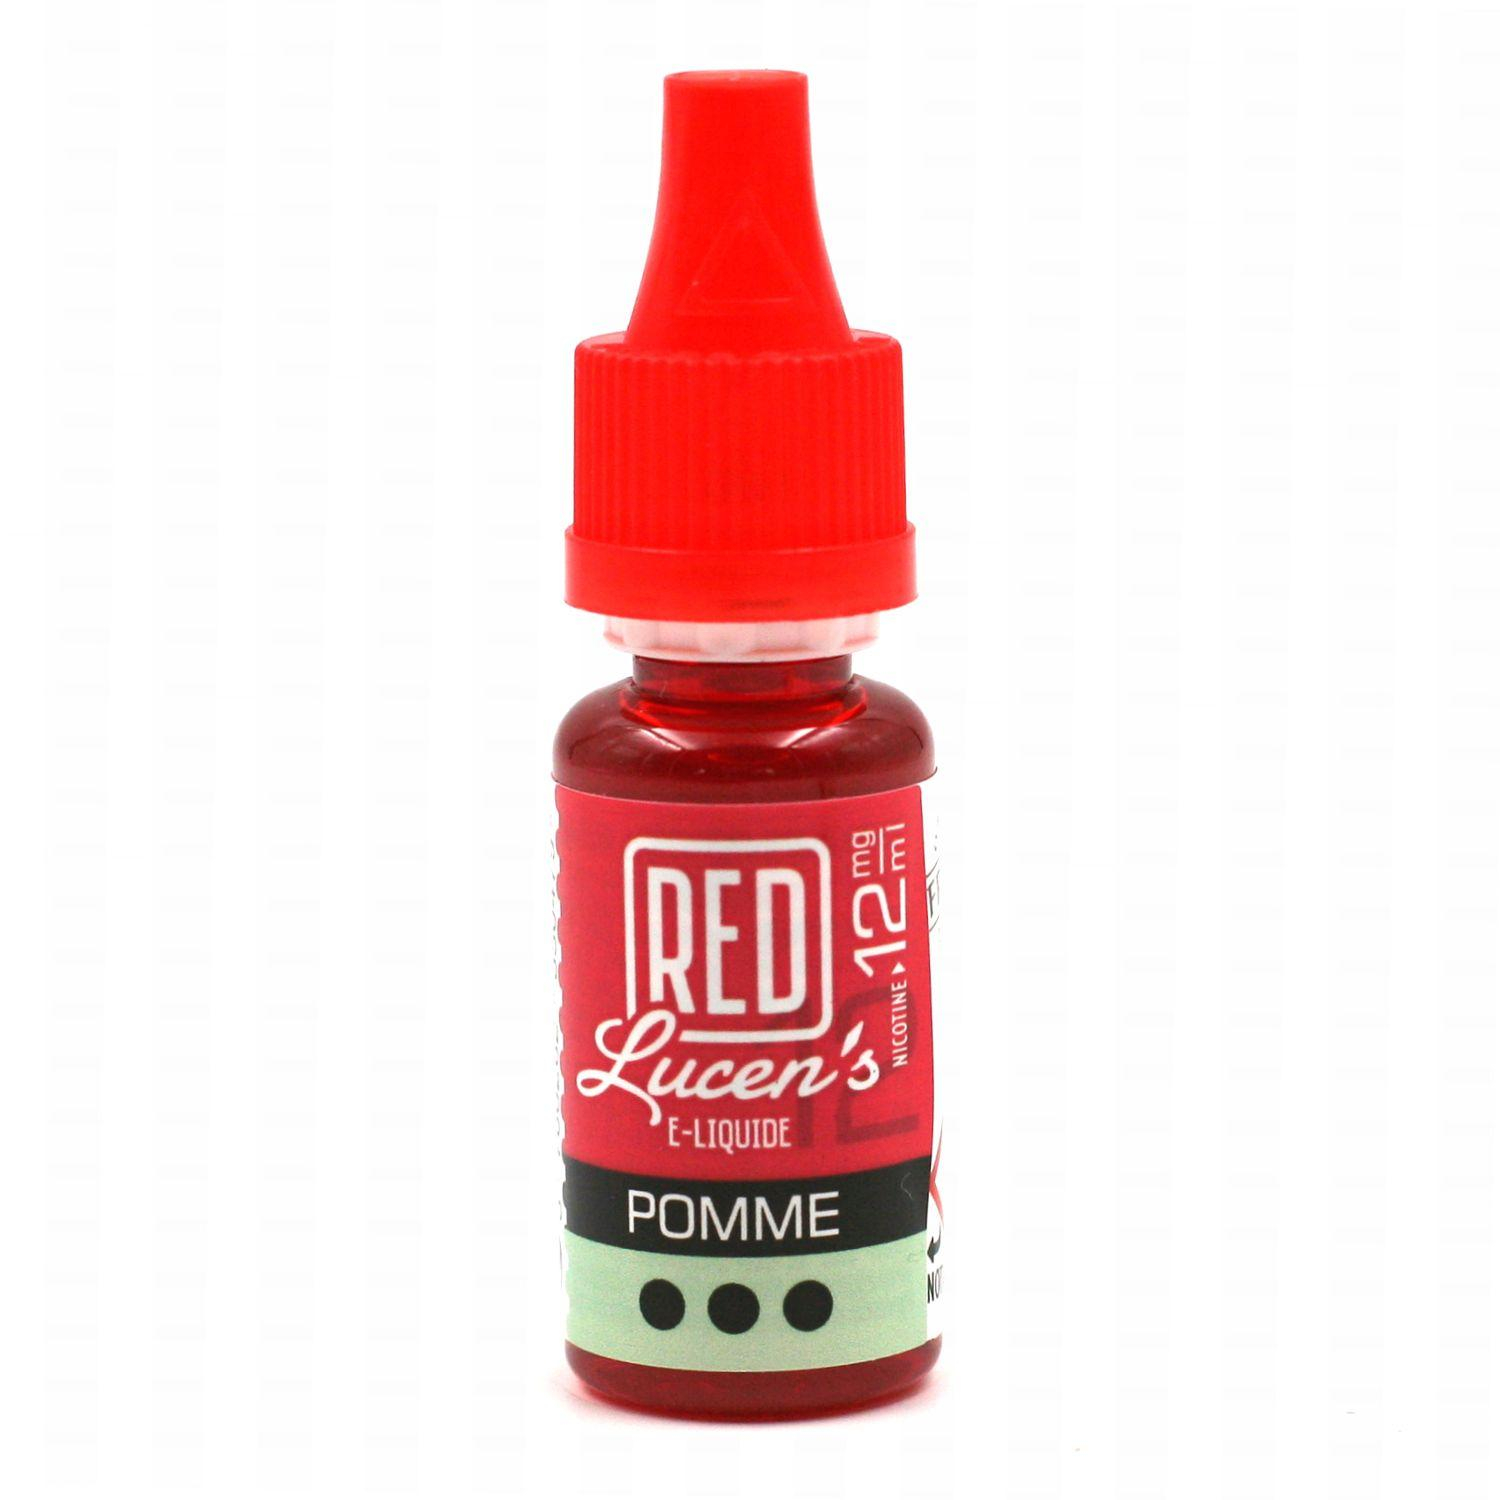 E-Liquide RED LUCEN'S – Pomme 12 mg